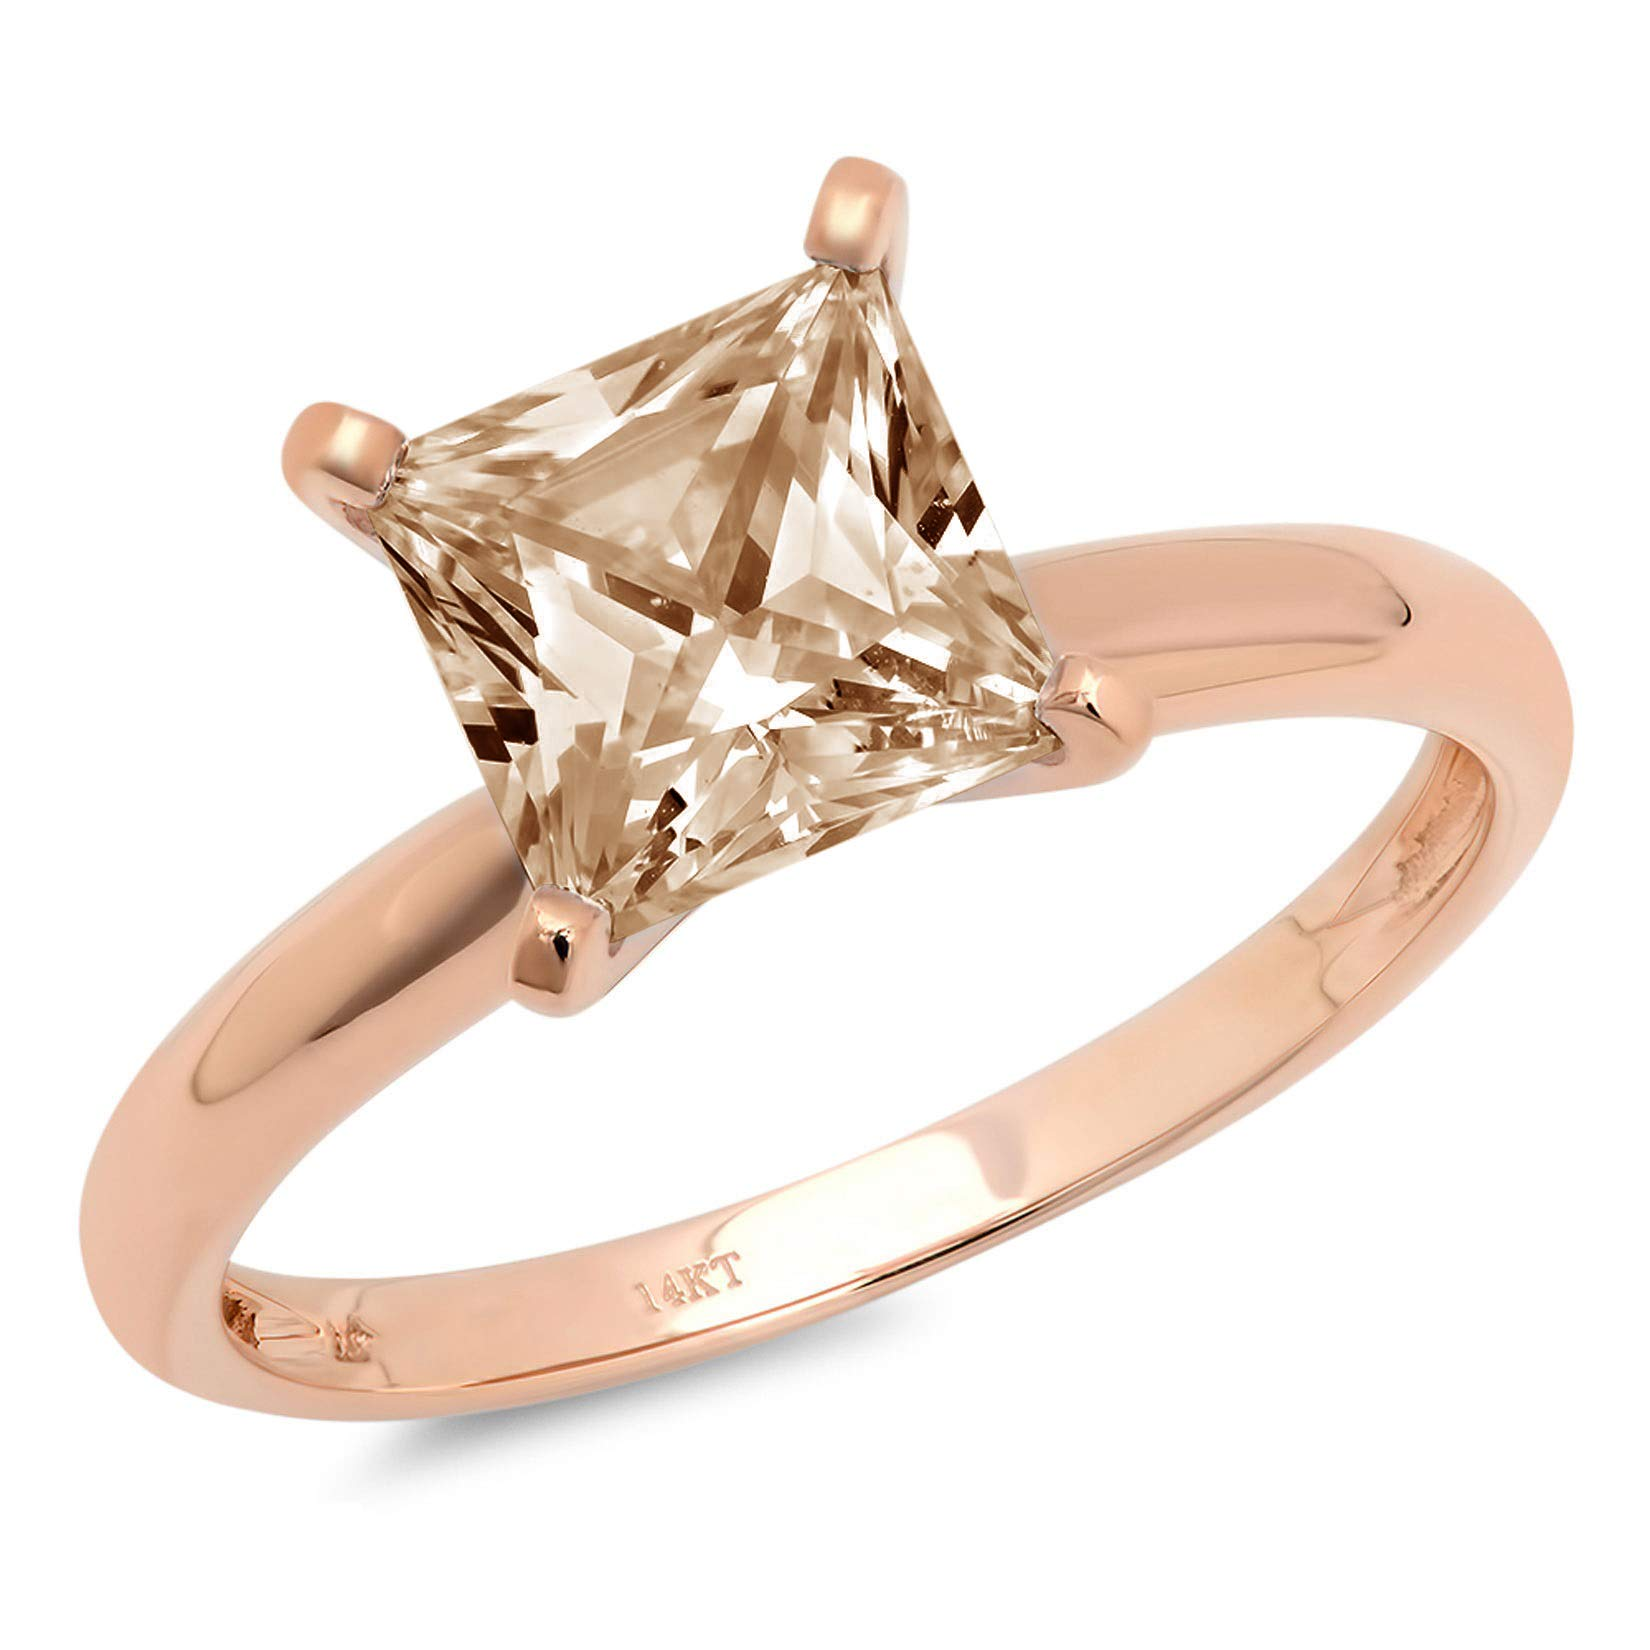 0.45ct Brilliant Princess Cut Solitaire Brown Champagne Simulated Diamond CZ Ideal VVS1 D 4-Prong Classic Designer Statement Ring in Solid Real 14k Rose Gold for Women